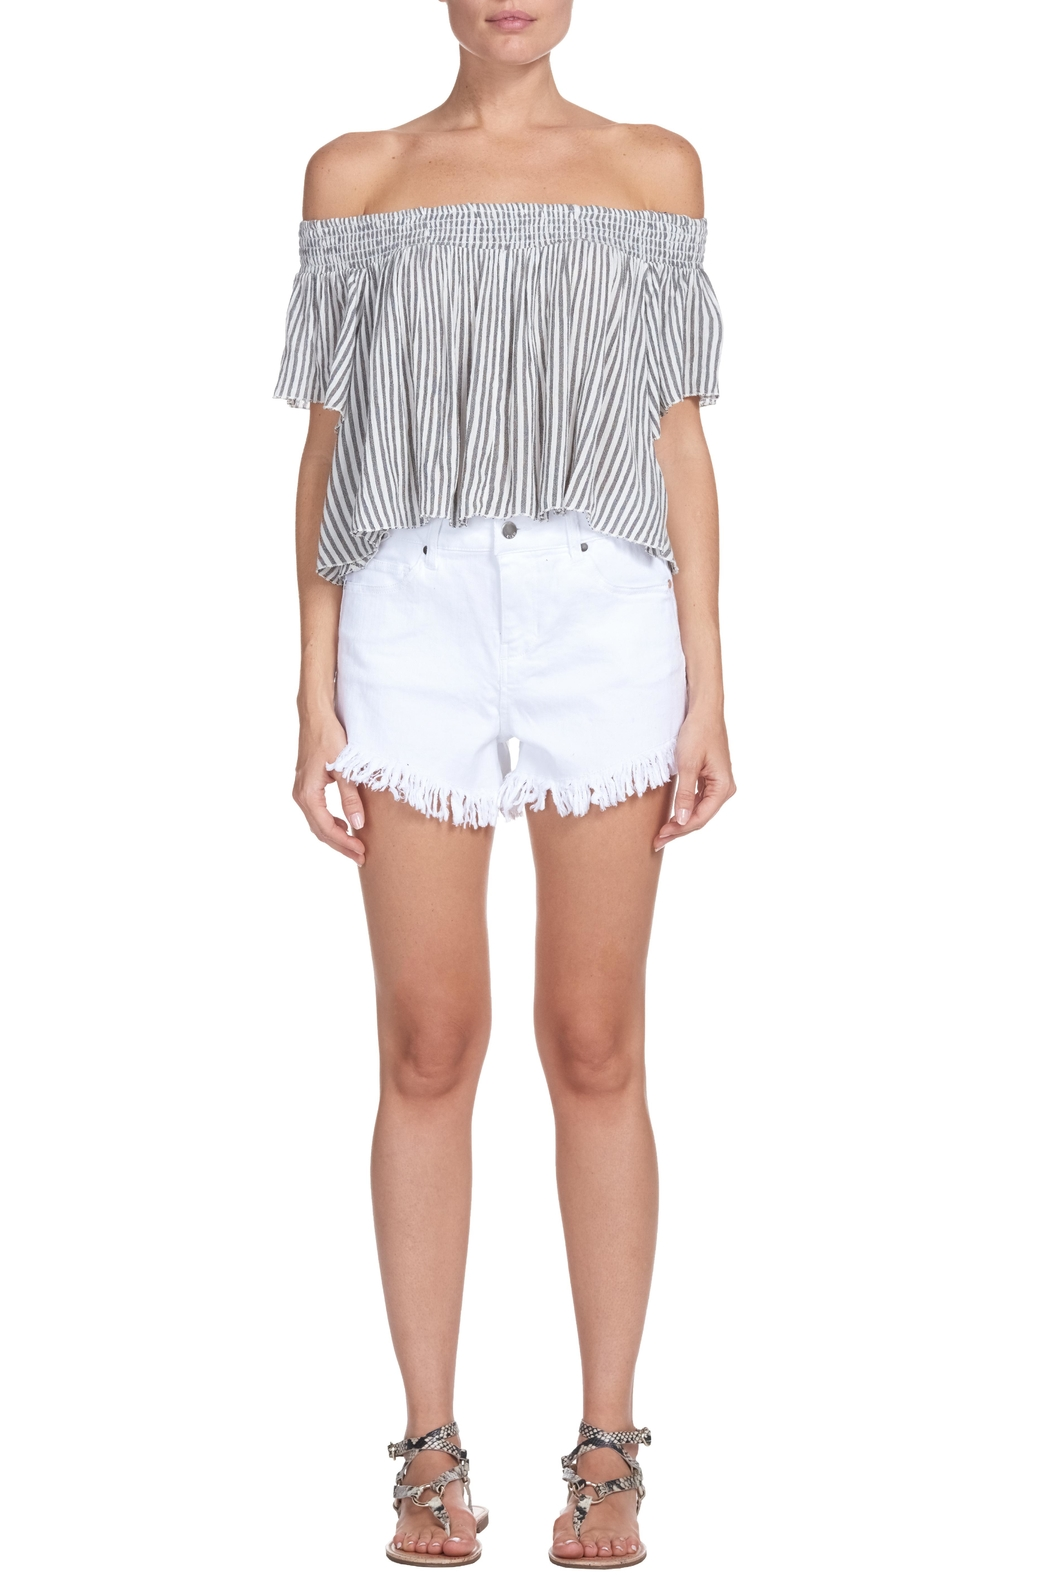 Elan Striped Crop Top - Main Image